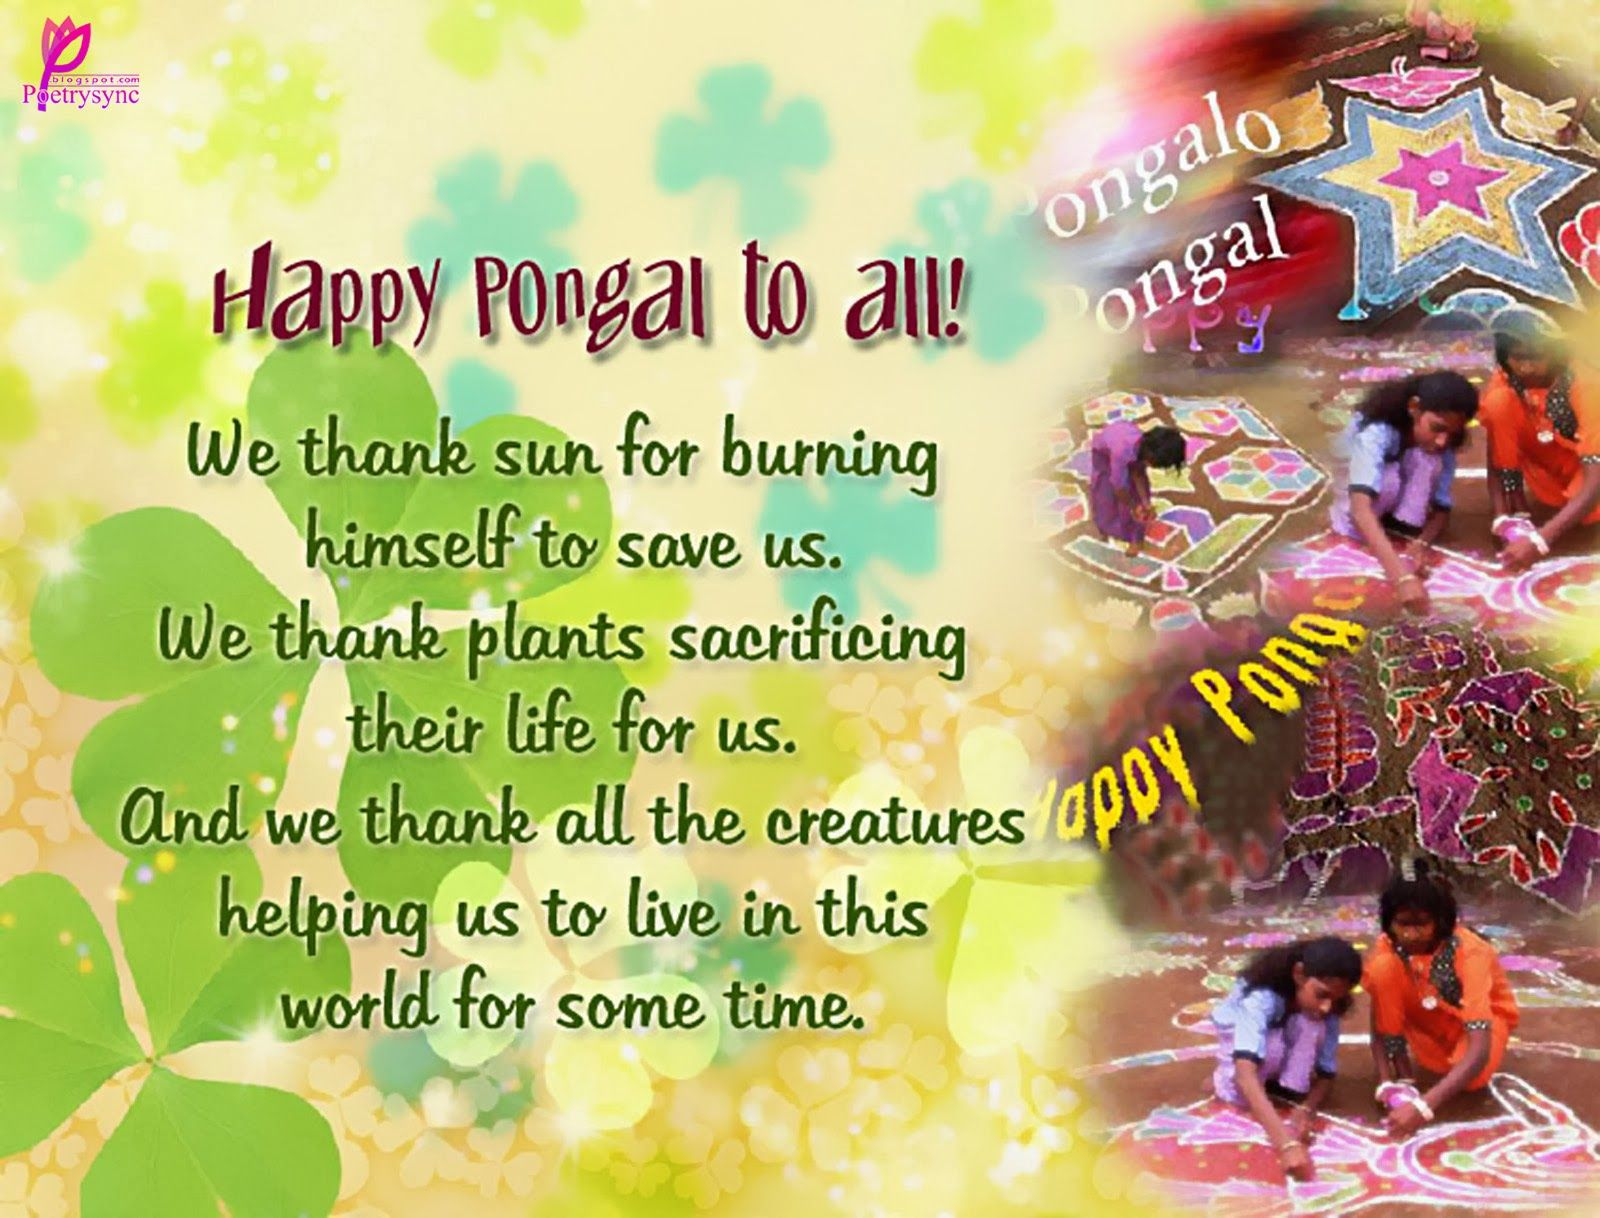 Happy pongal wishes image with message pongal wishes pinterest happy pongal wishes image with message kristyandbryce Images